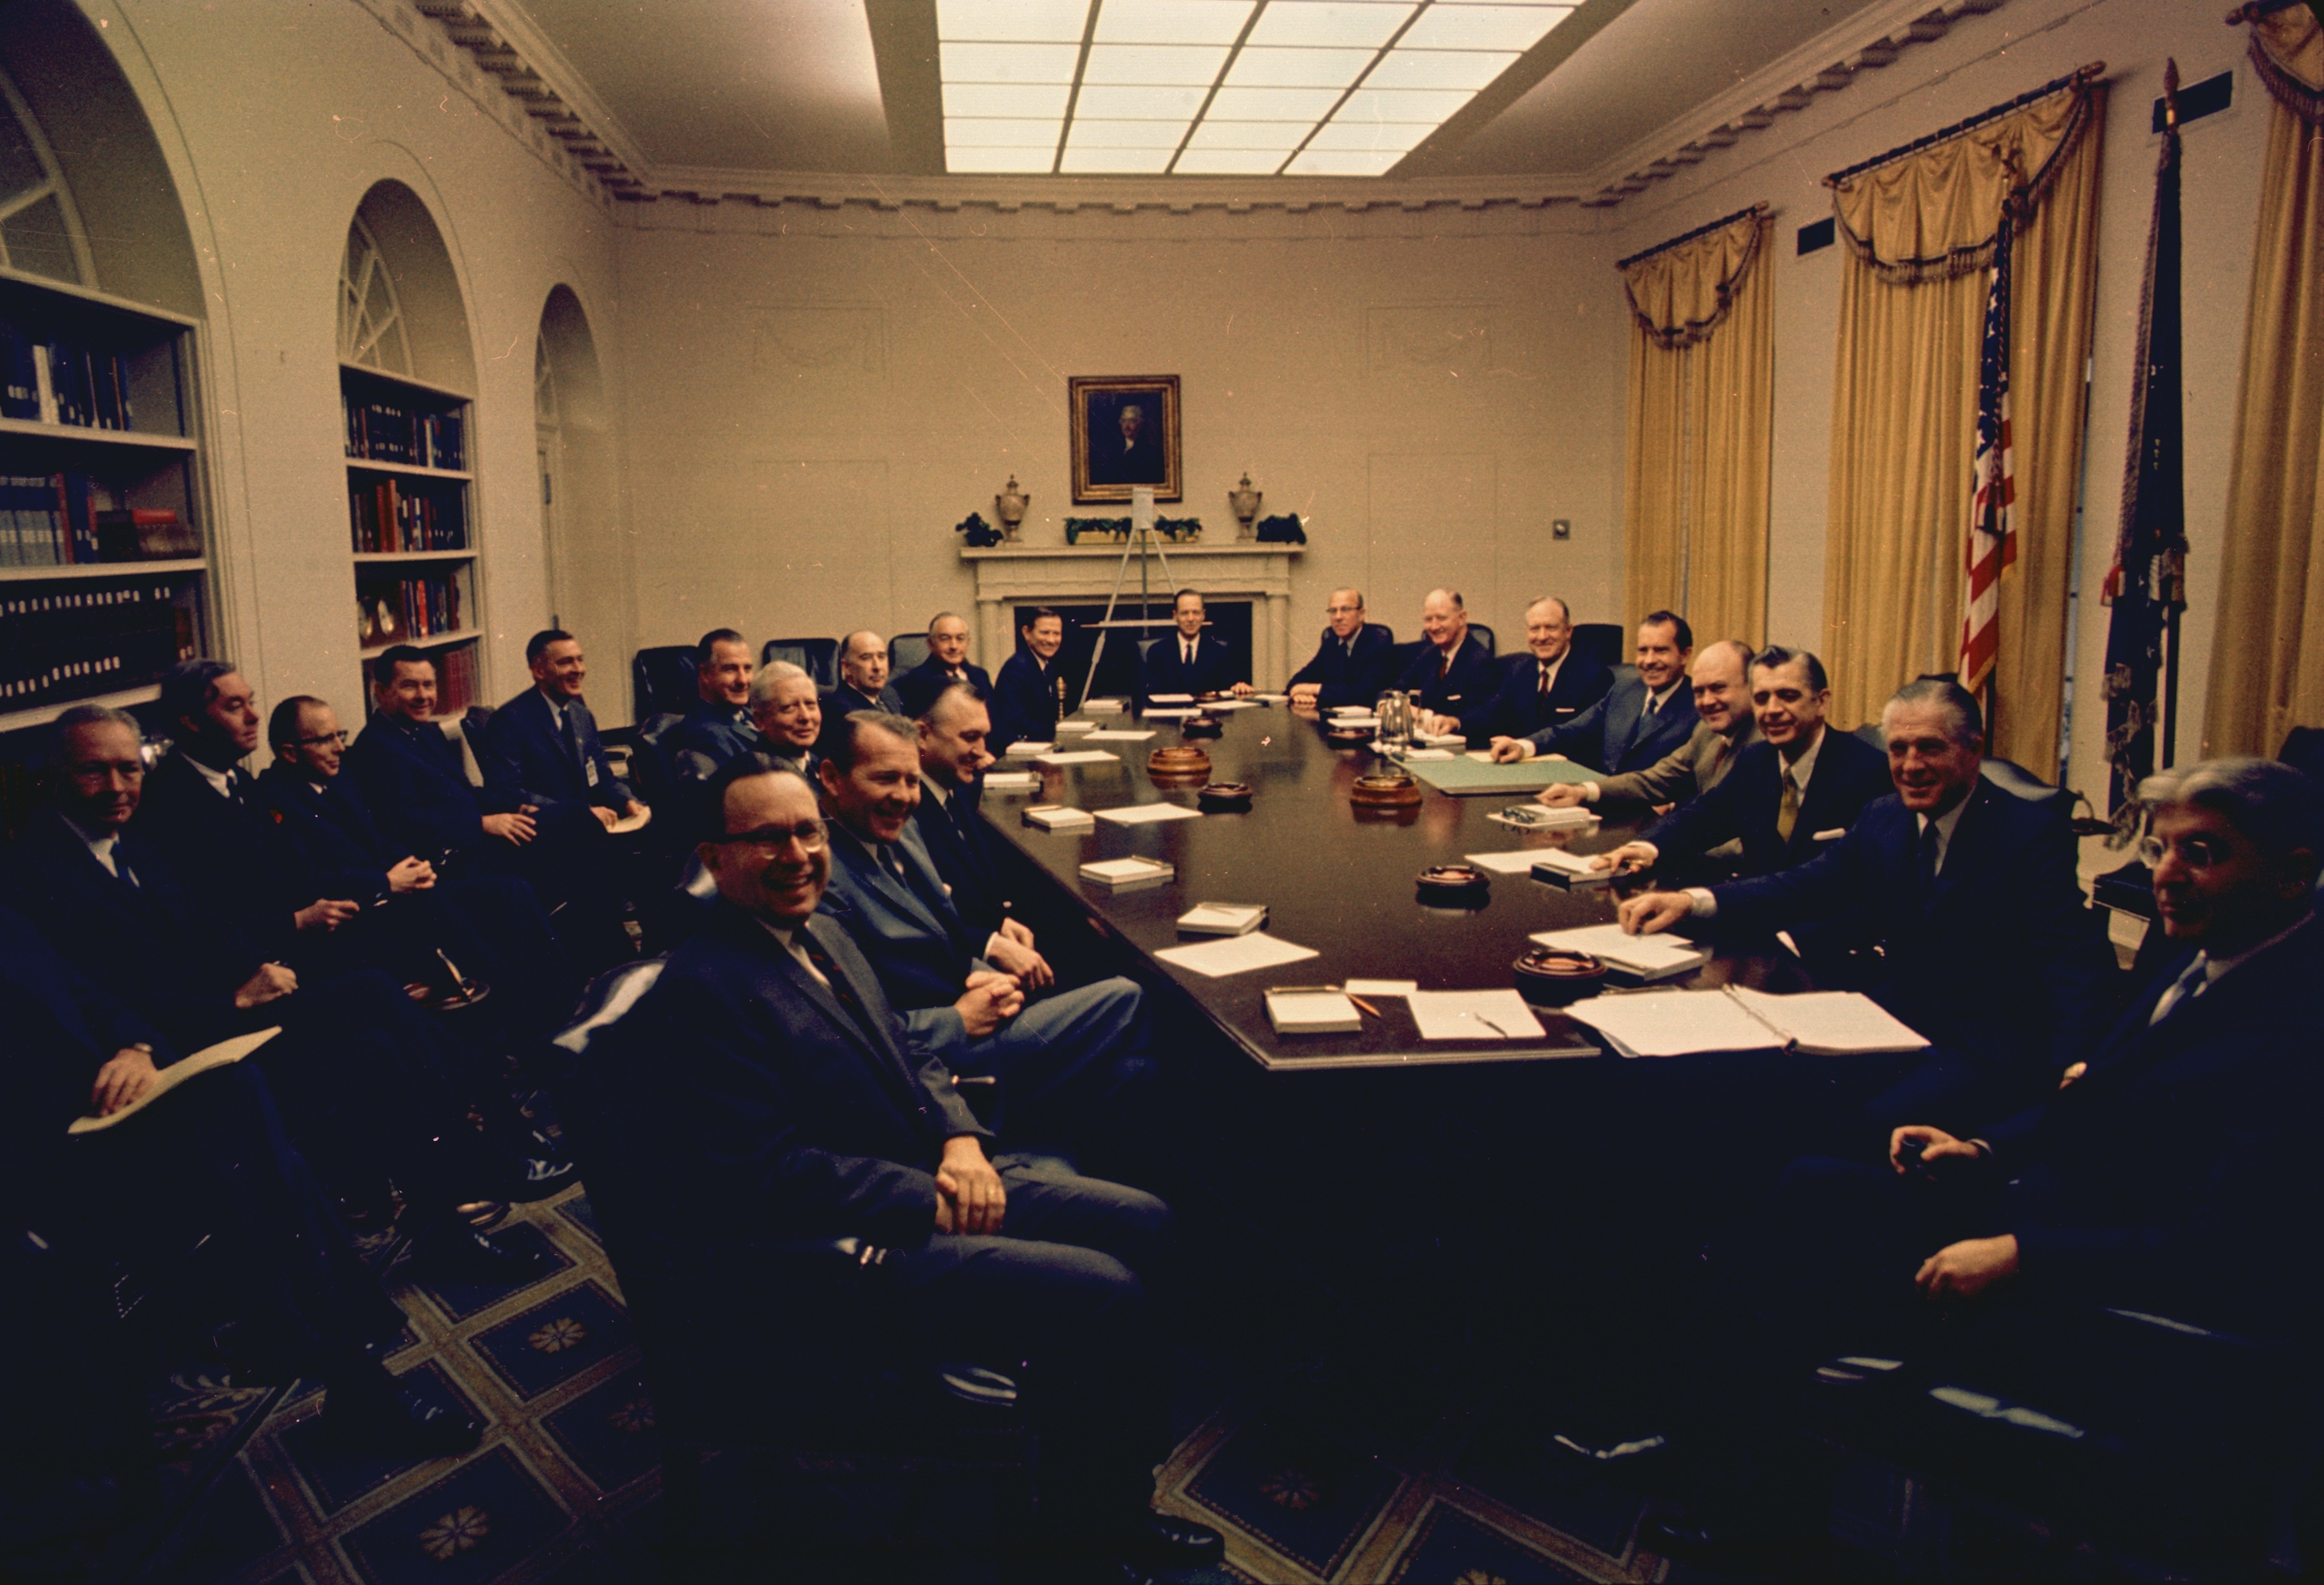 File:President Nixon with his first term cabinet.jpg - Wikimedia ...